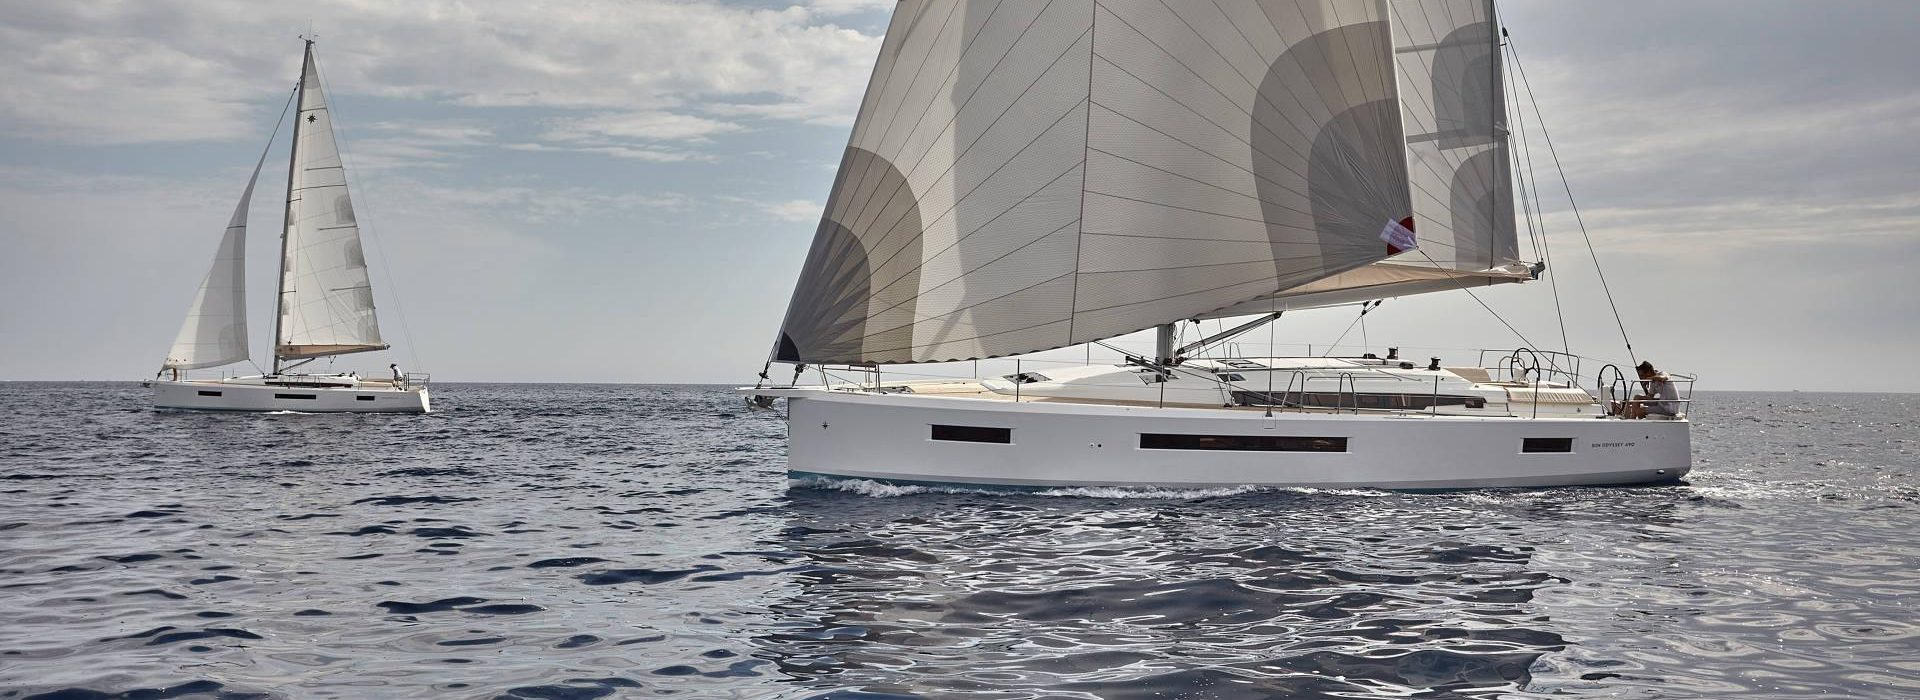 2 Jeanneau Sun Odyssey 490s sailing in open water